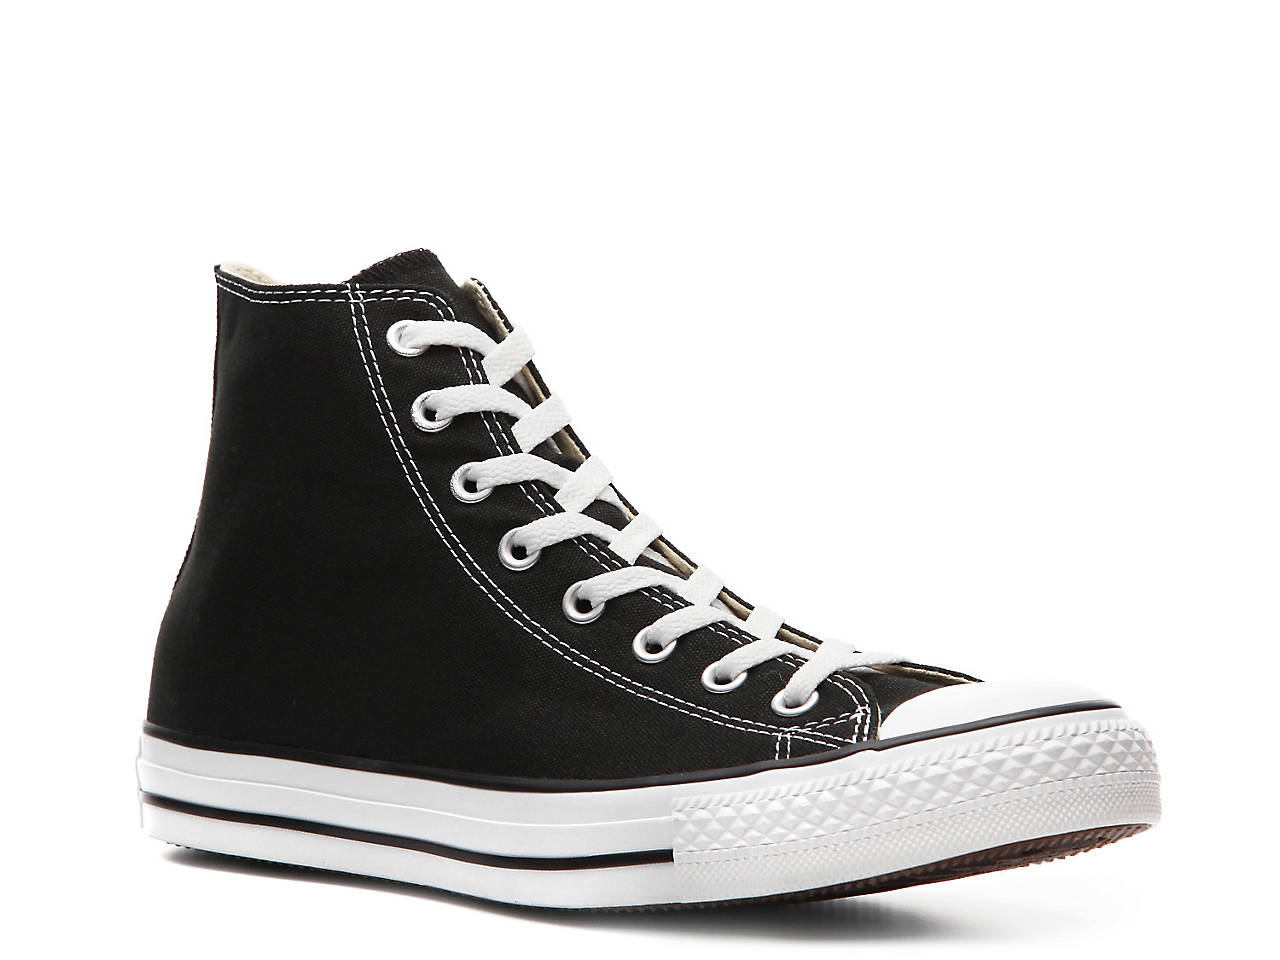 Taylor Star Top Chuck High All Shoes Men's Sneaker Converse Yfgm7vIyb6